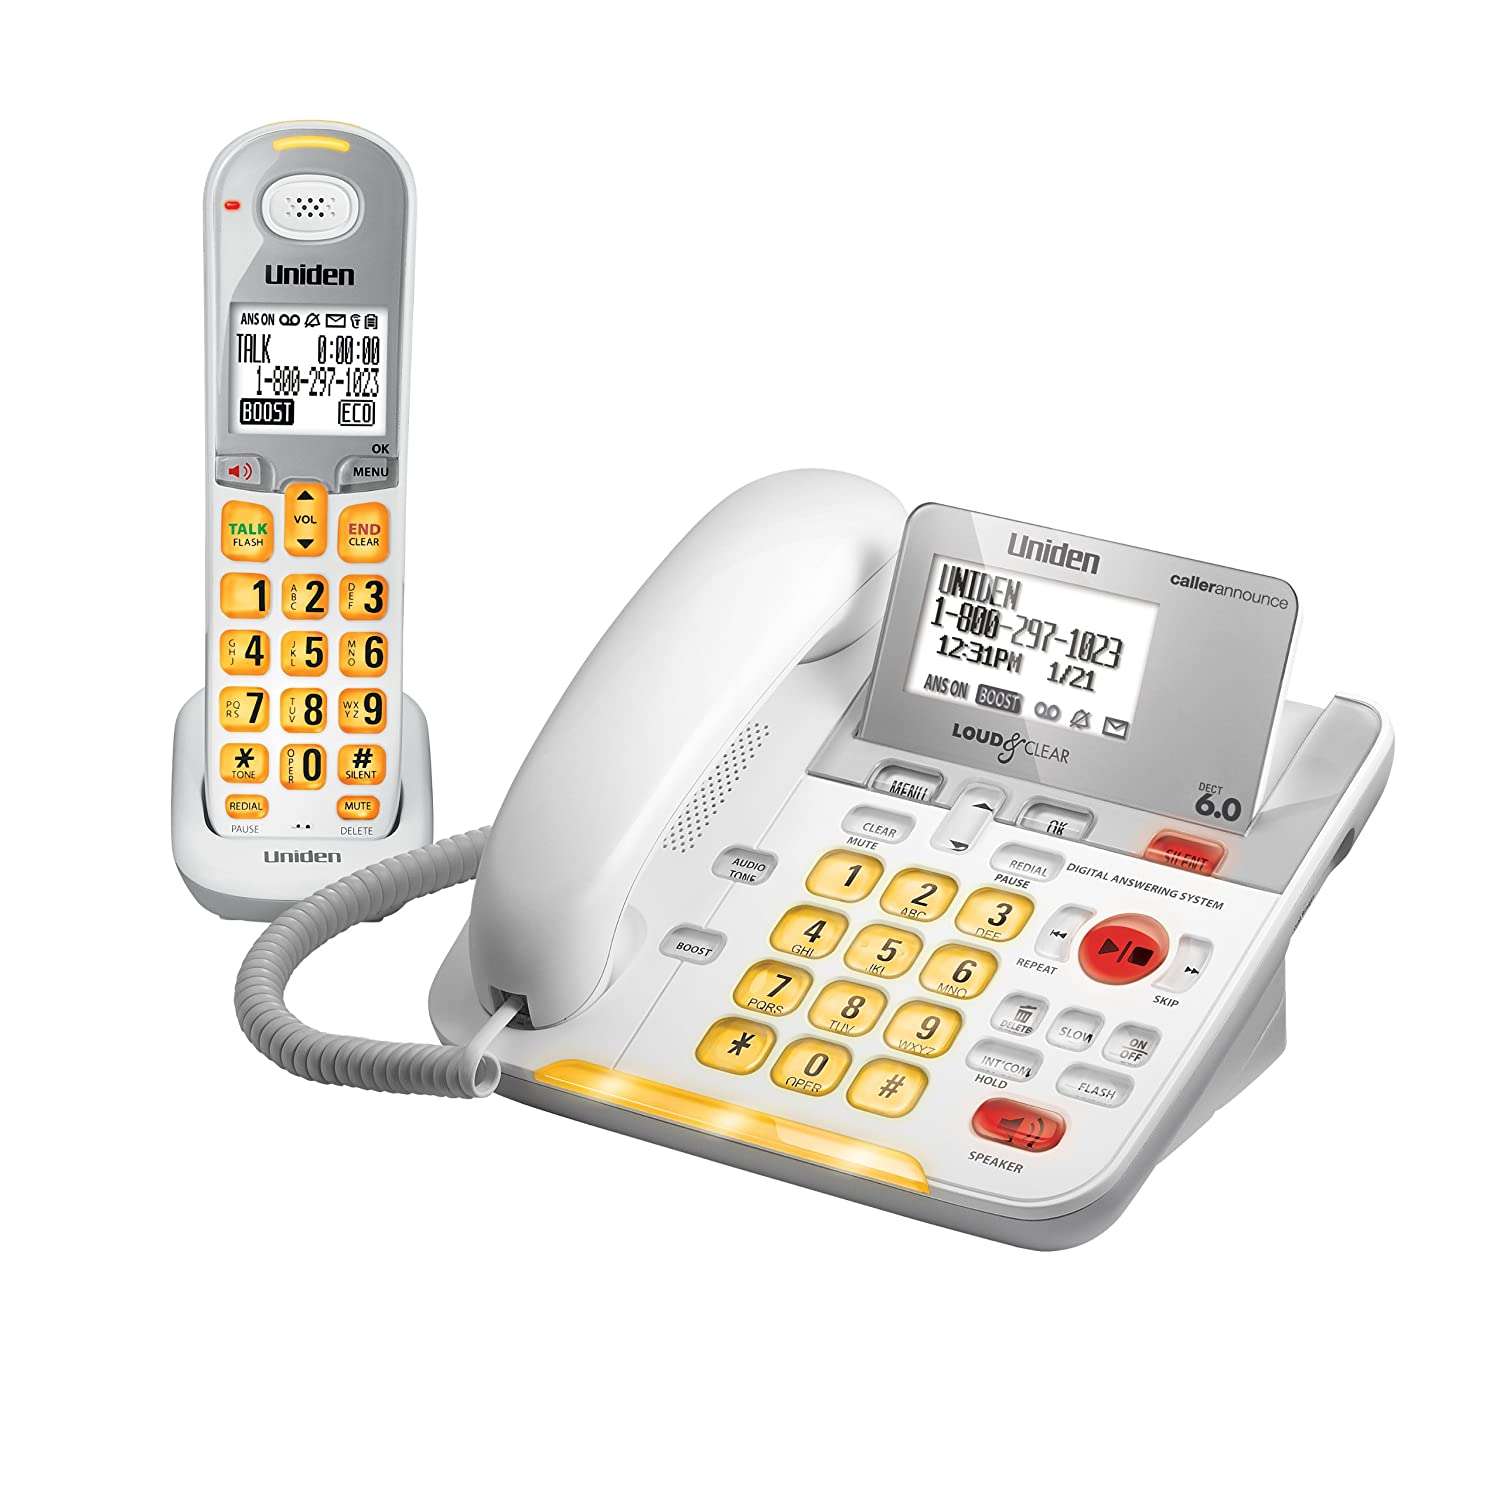 Amazon.com : Uniden DECT 6.0 Cordless Phone with Caller ID Answering System  - White (D3097) : Cordless Telephones : Office Products